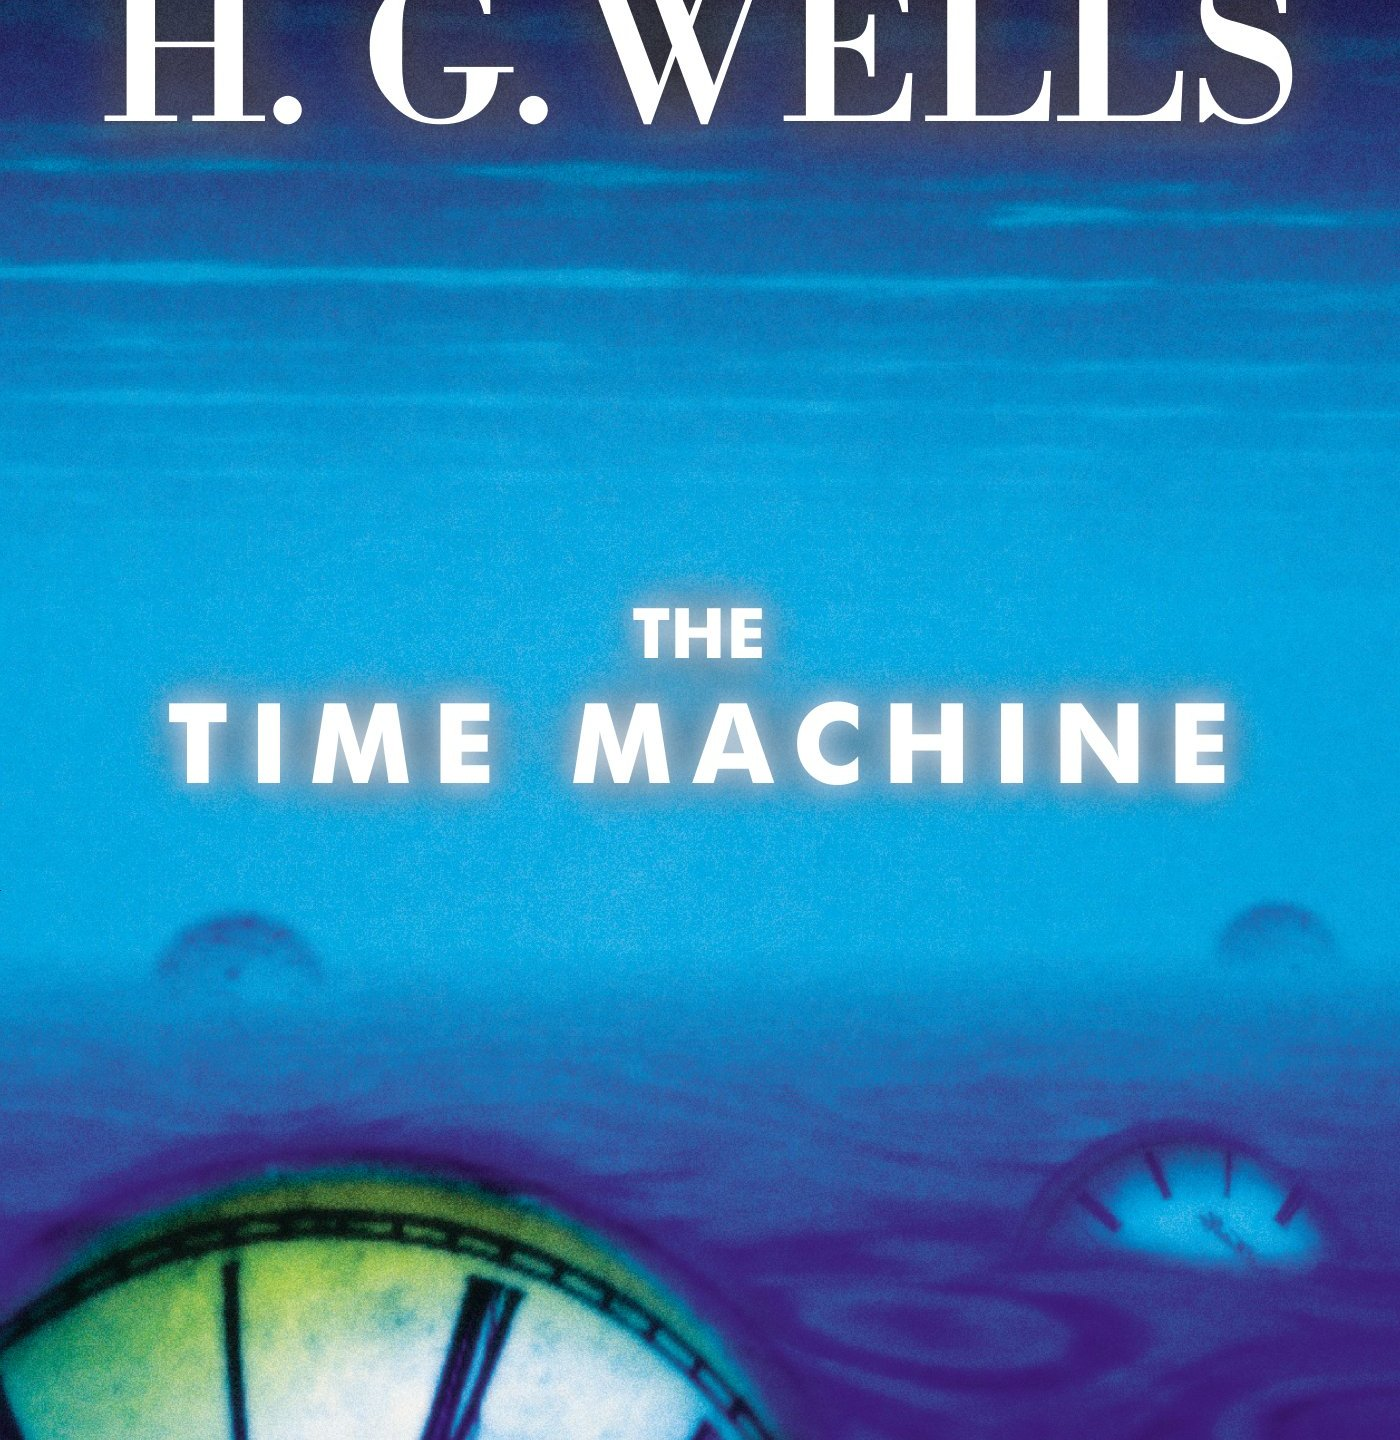 The Time Machine, by H.G. Wells